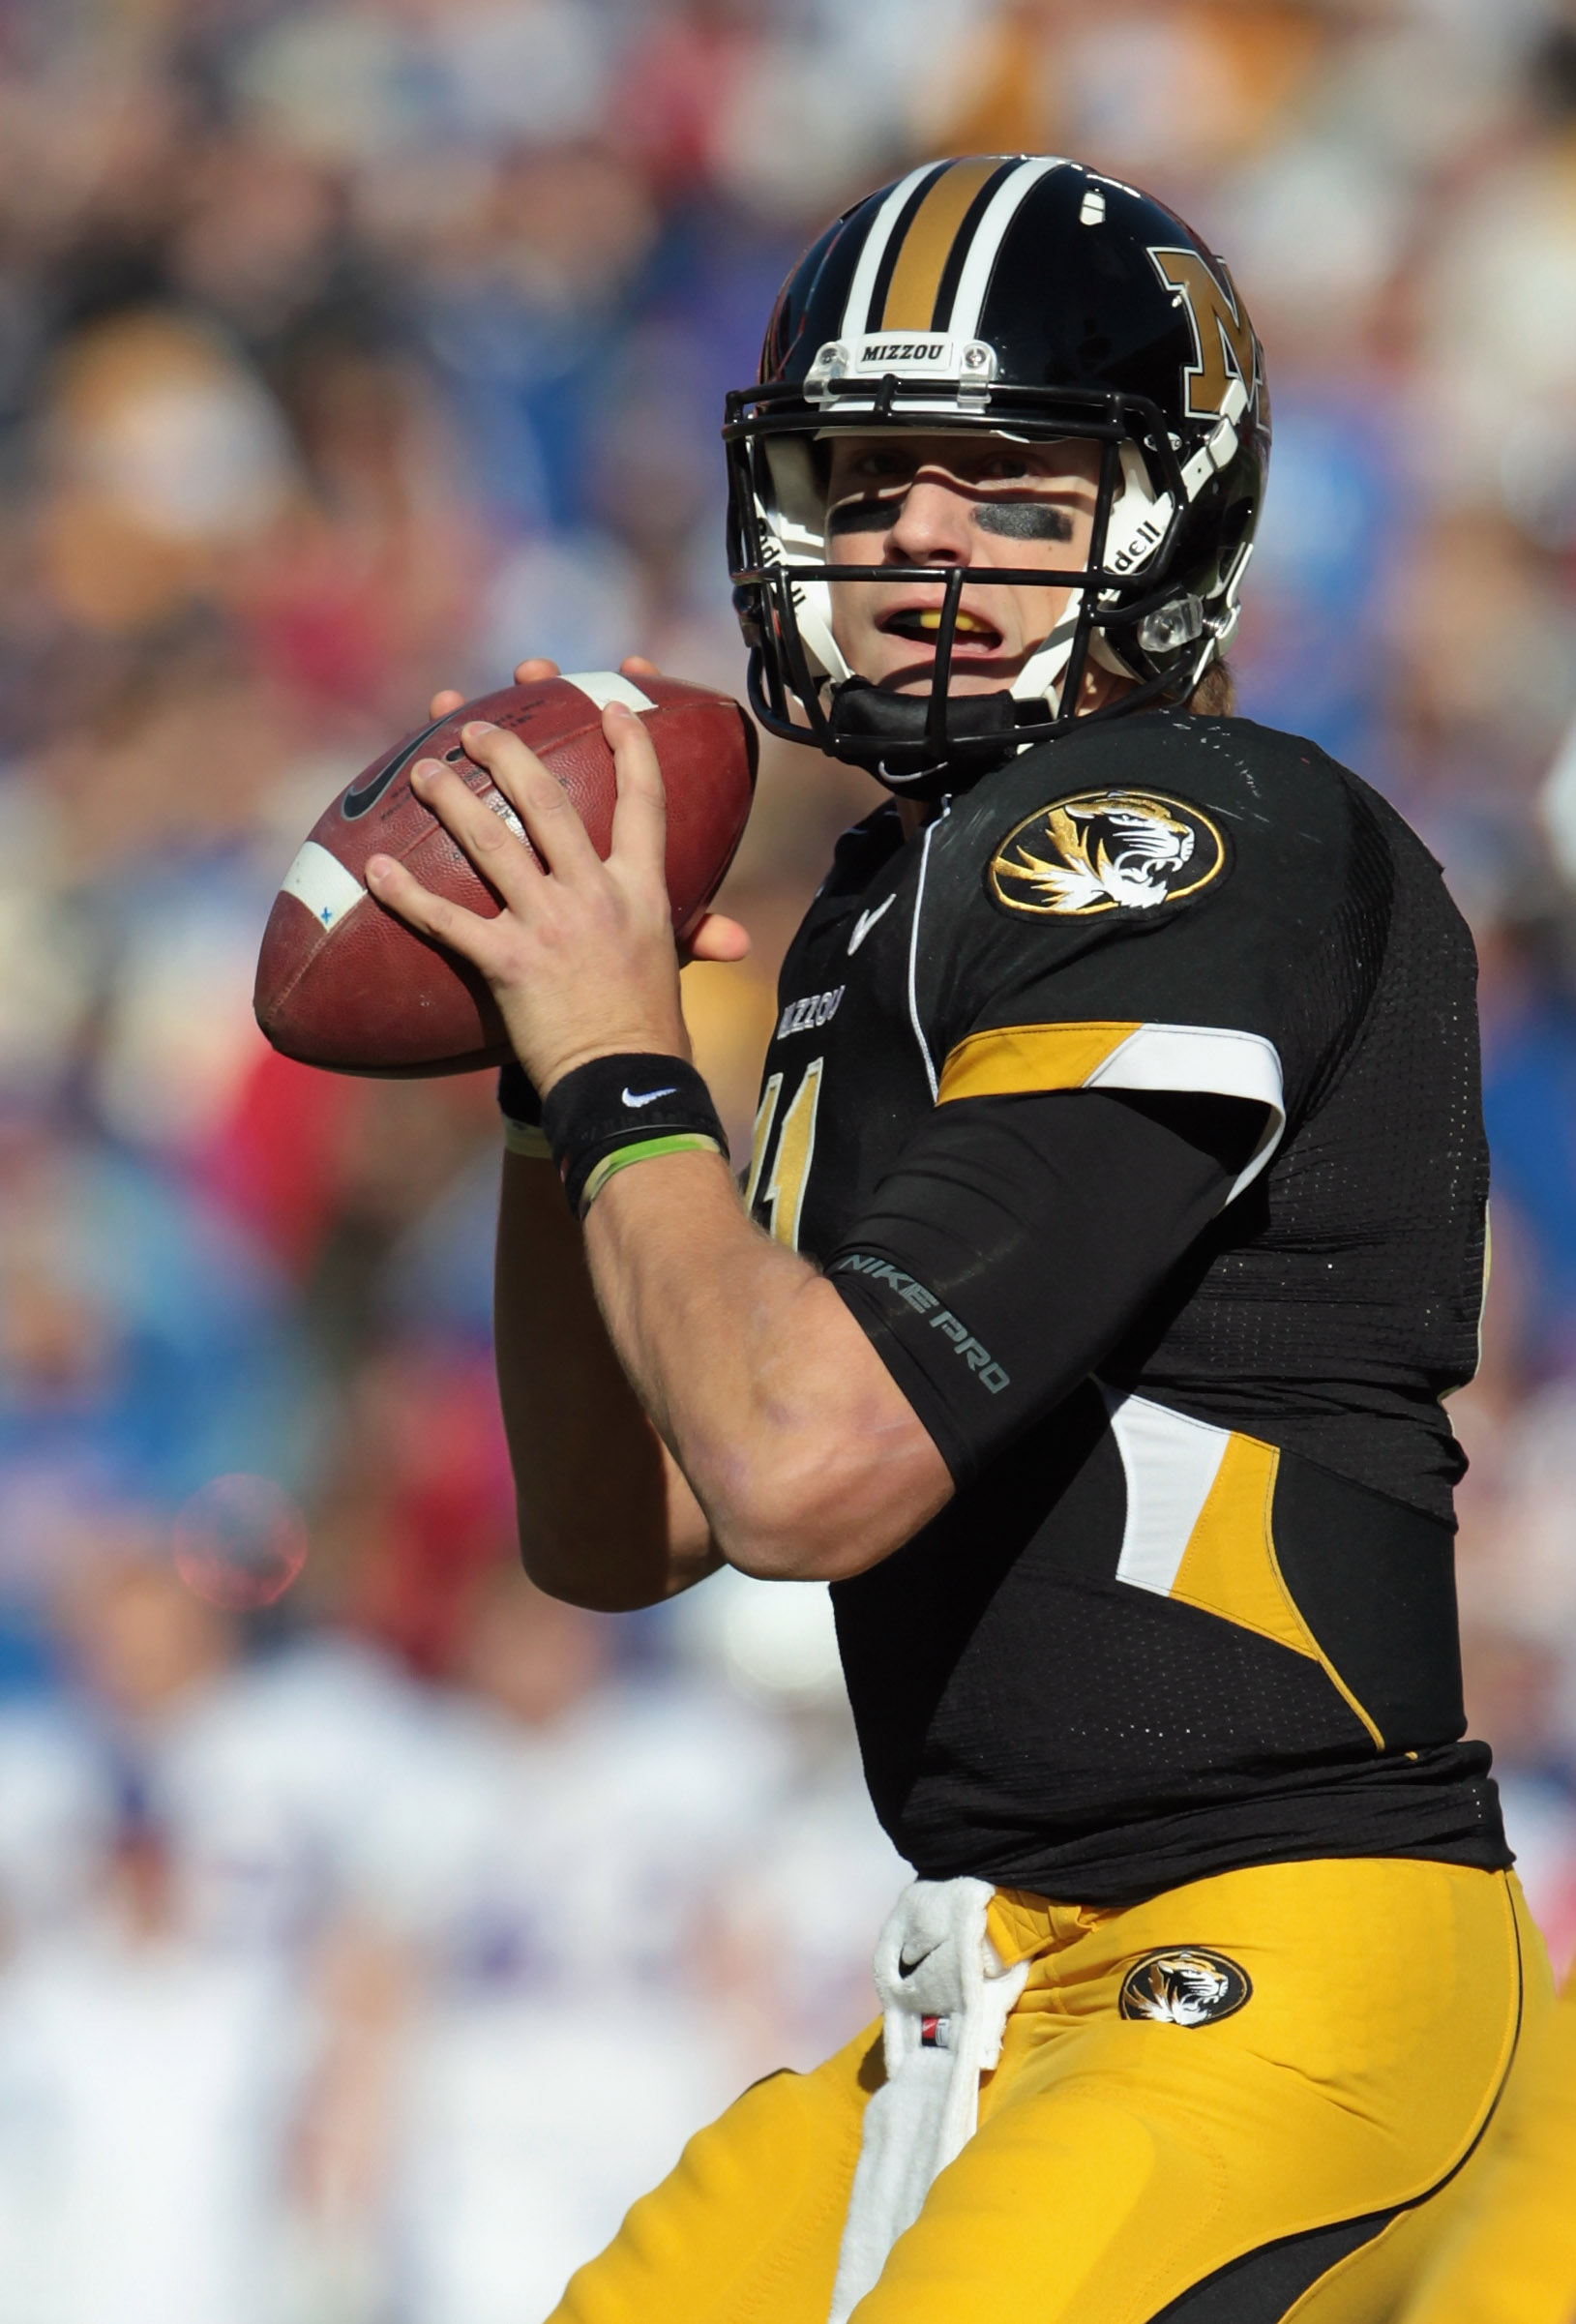 KANSAS CITY, MO - NOVEMBER 27:  Quarterback Blaine Gabbert #11 of the Missouri Tigers passes during the game against the Kansas Jayhawks on November 27, 2010 at Arrowhead Stadium in Kansas City, Missouri.  (Photo by Jamie Squire/Getty Images)